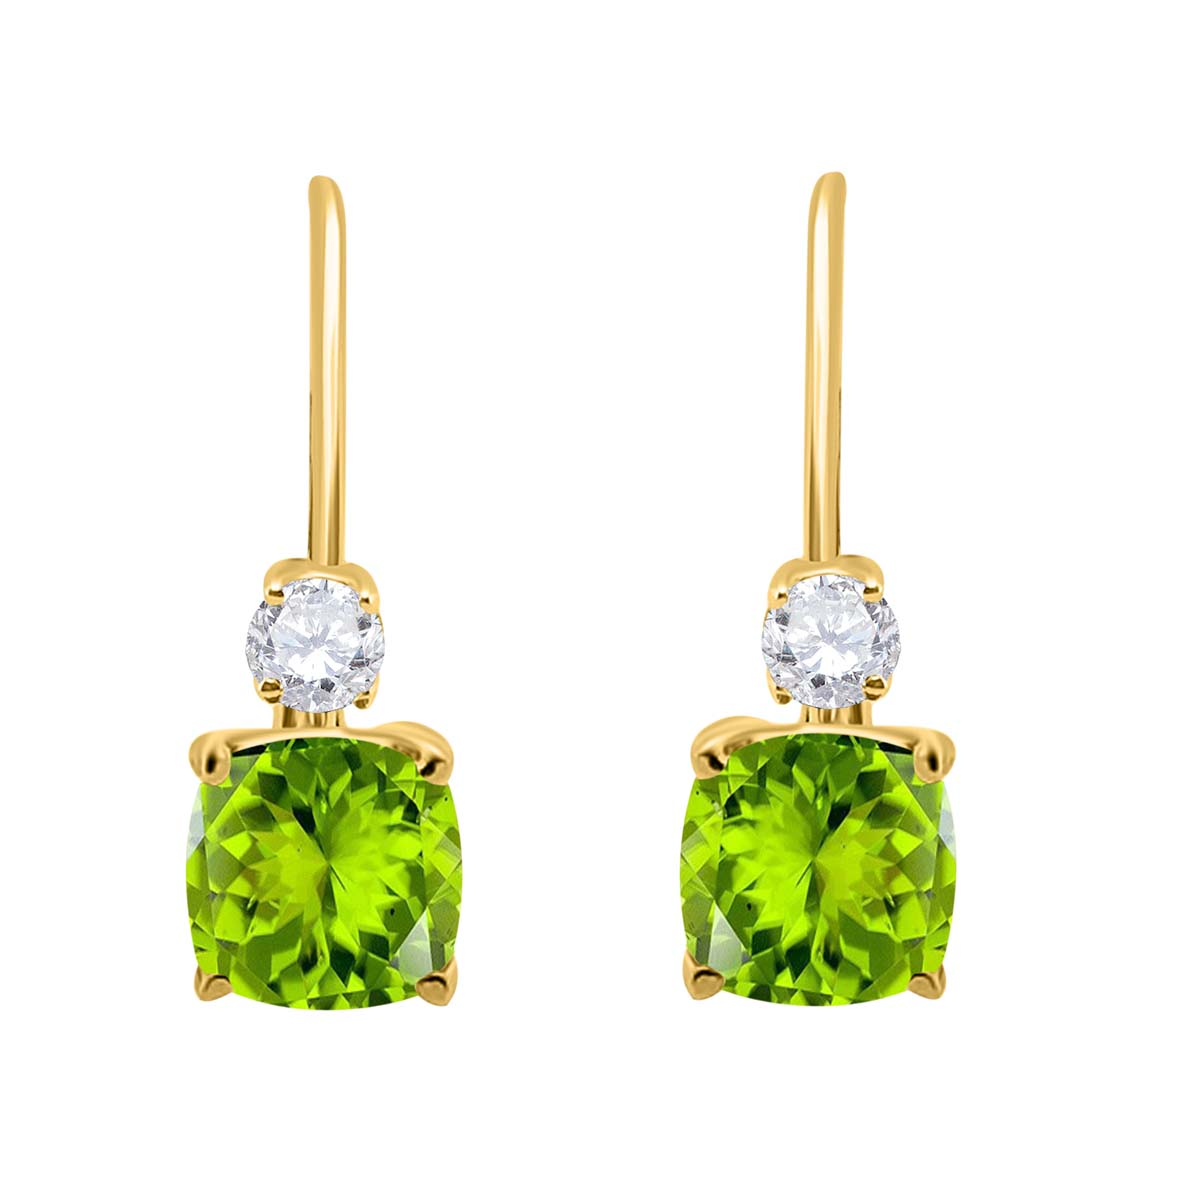 2.65 Carat. Cushion Cut Gemstone And Diamond Leverback Earrings sets for girls or Women Peridot 14K Yellow Gold 4 Prong-Setting Cushion adultsthis is the lovely gift for anniversary